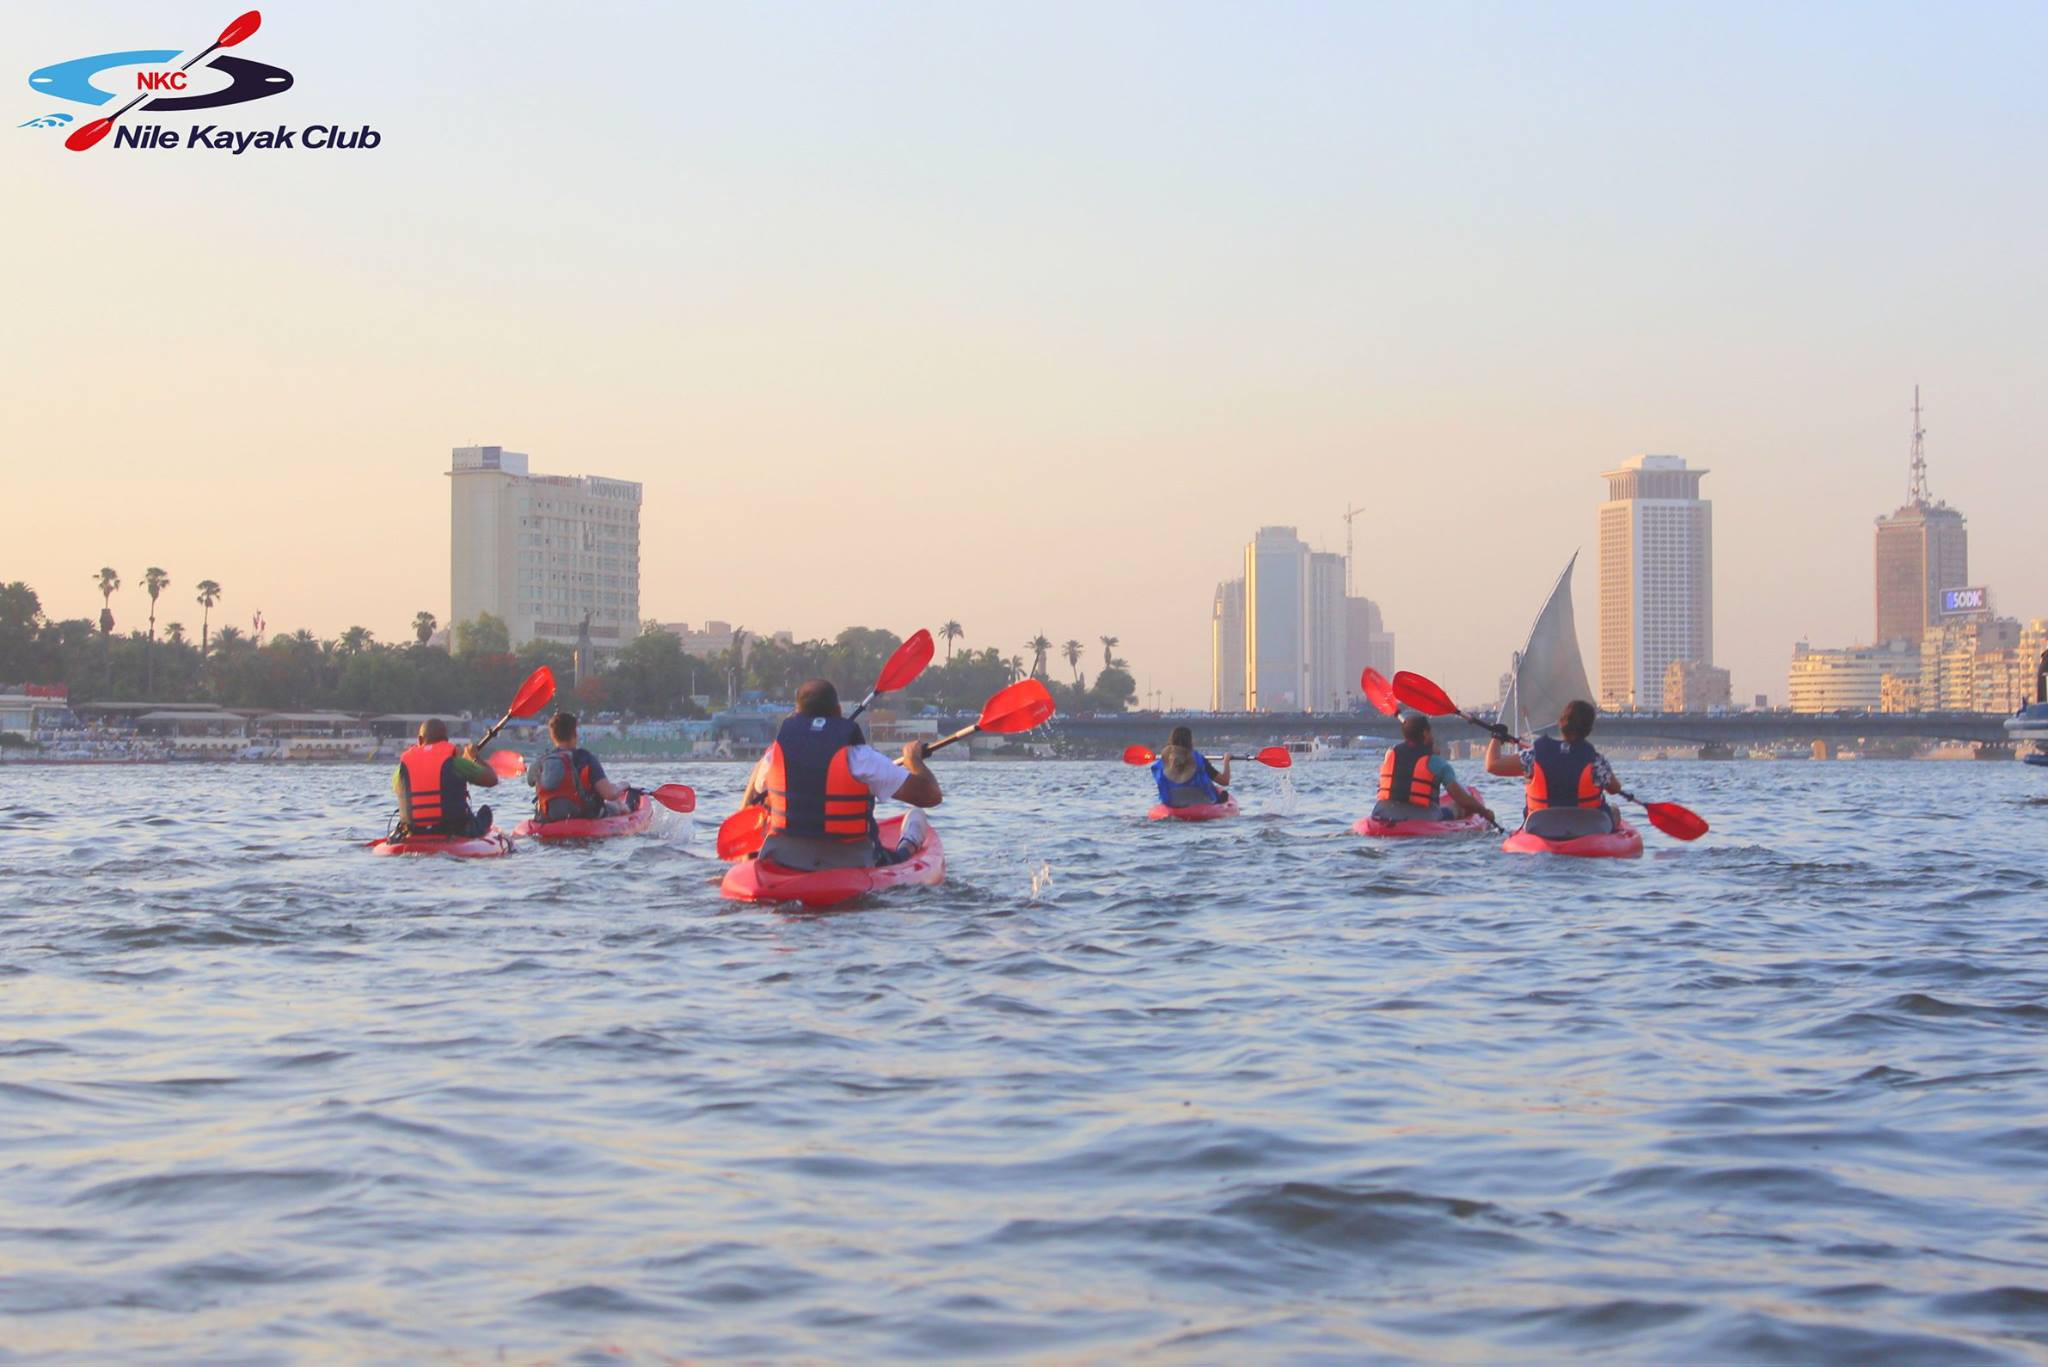 2 - Kayaking on the Nile (Got their permission to use this image from their Facebook page)